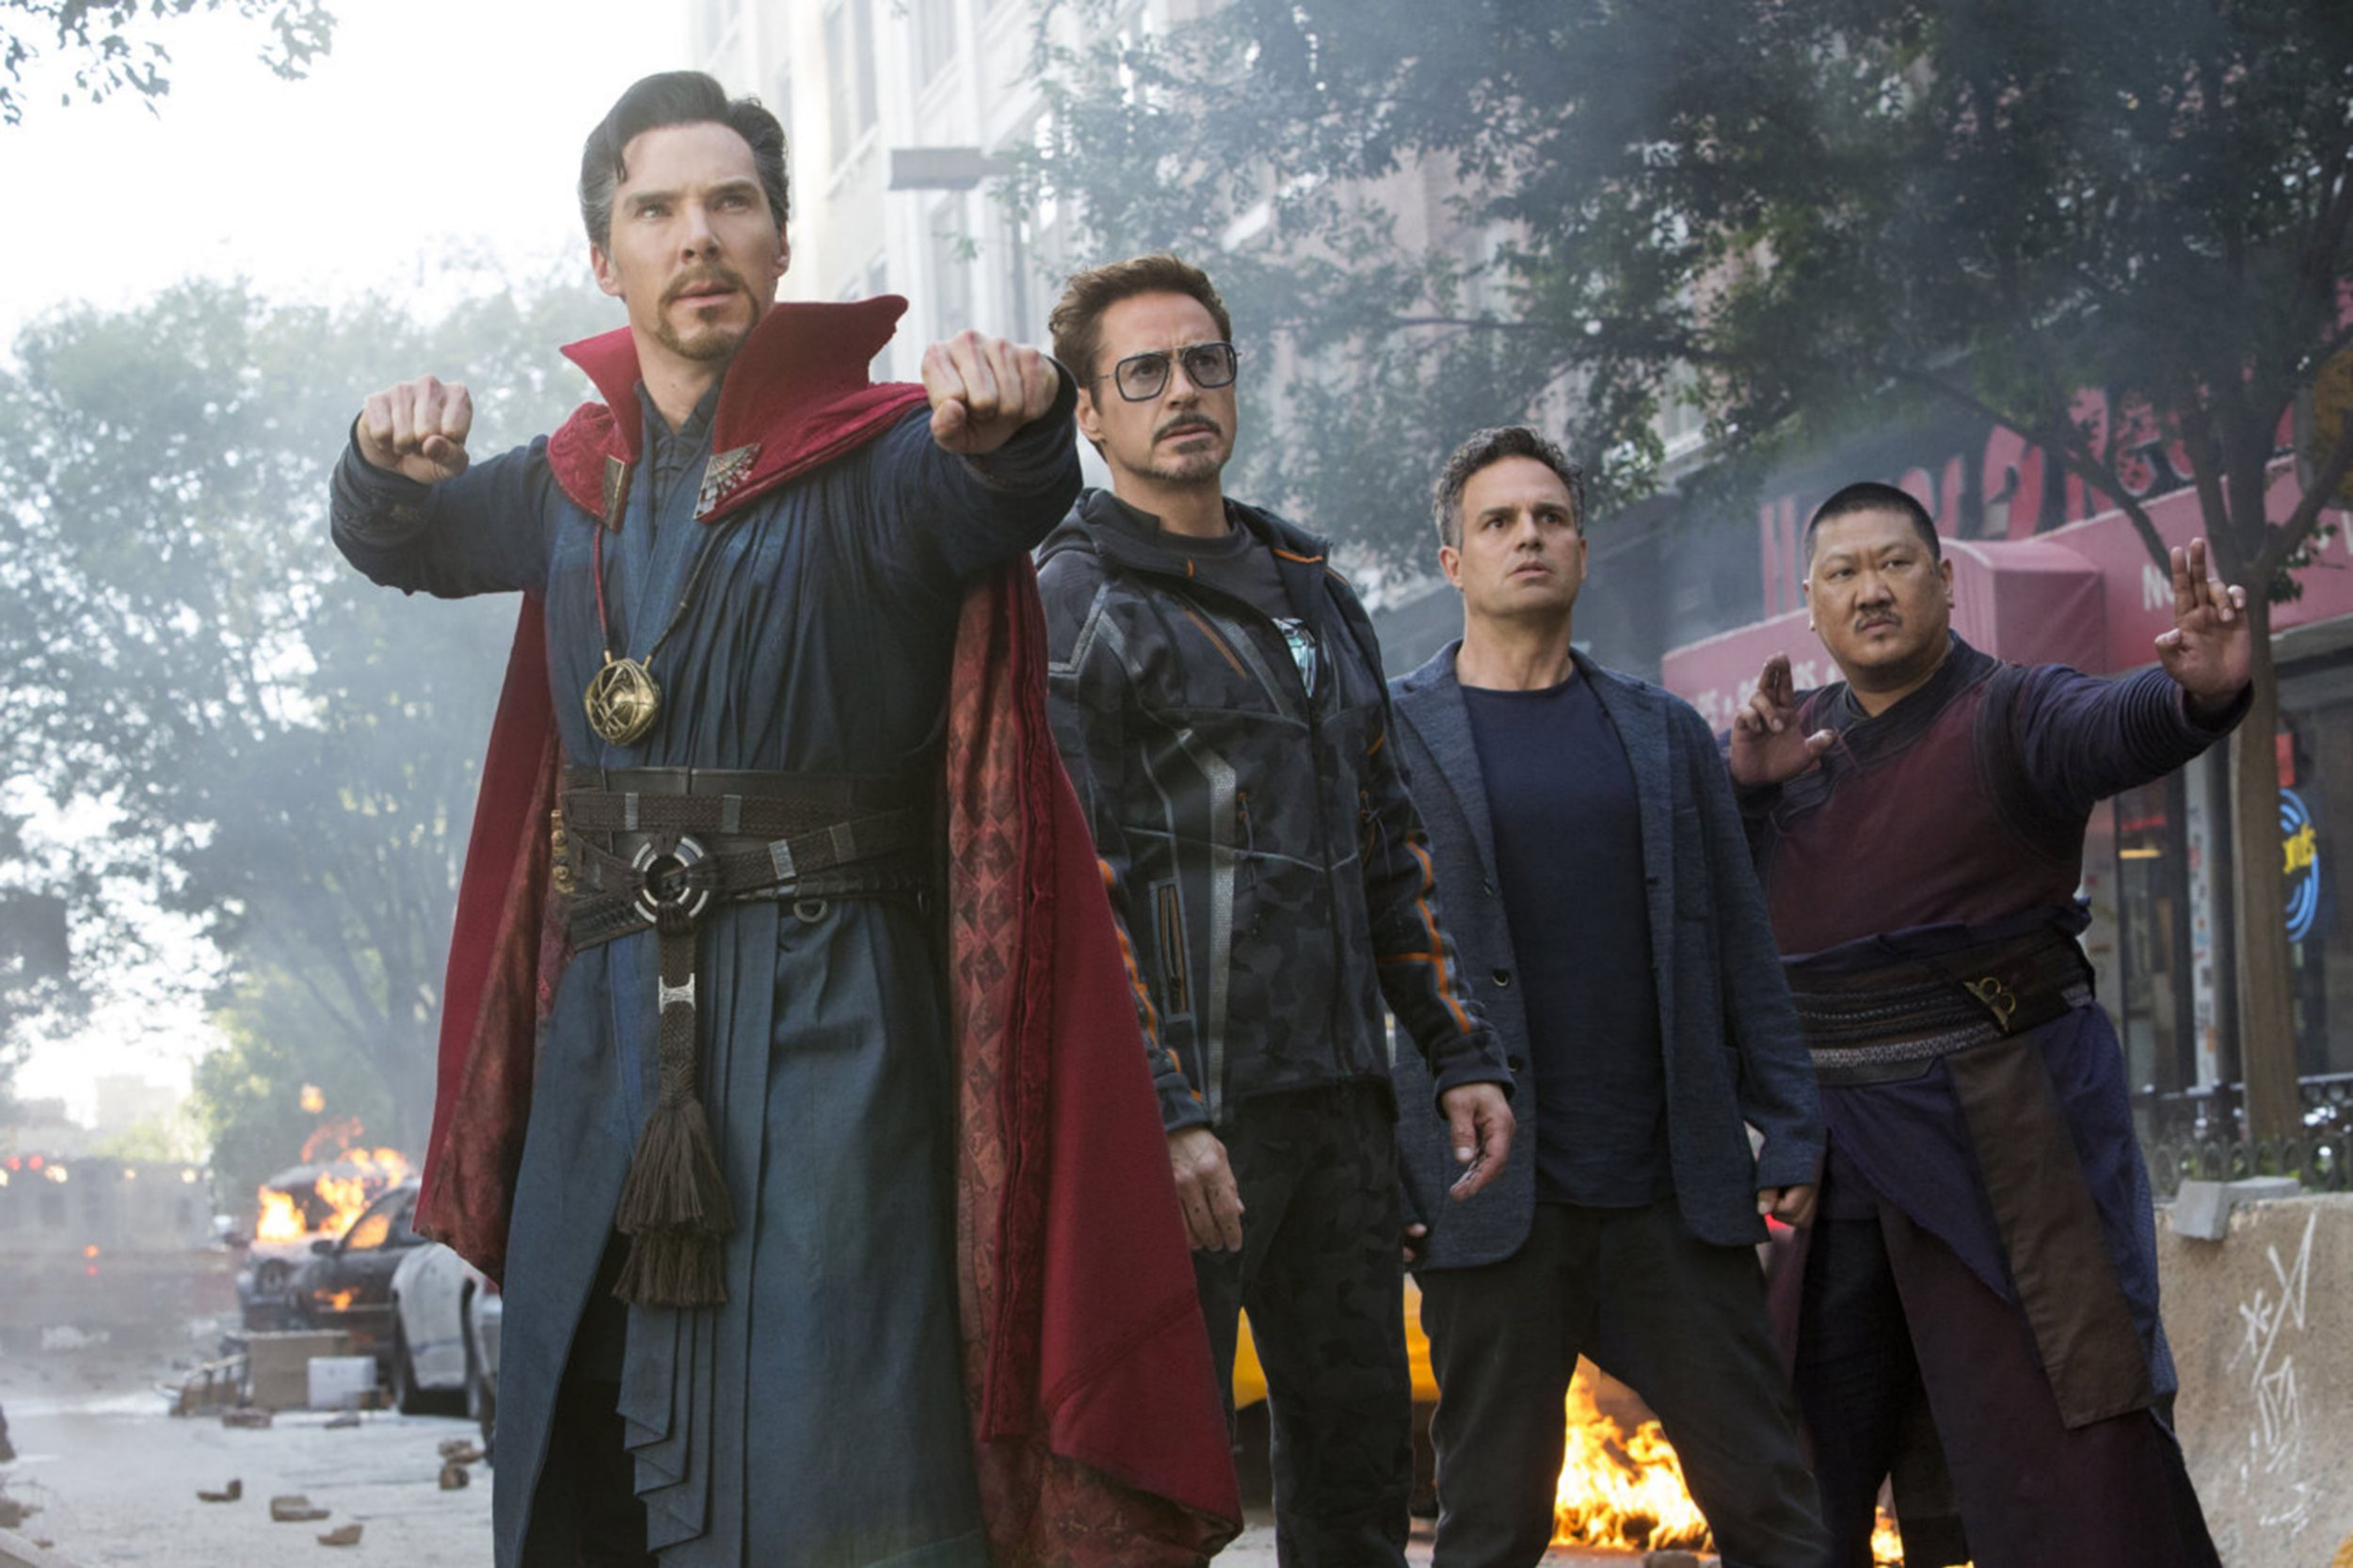 Where to watch, download and stream Avengers Infinity War online ahead of Endgame release